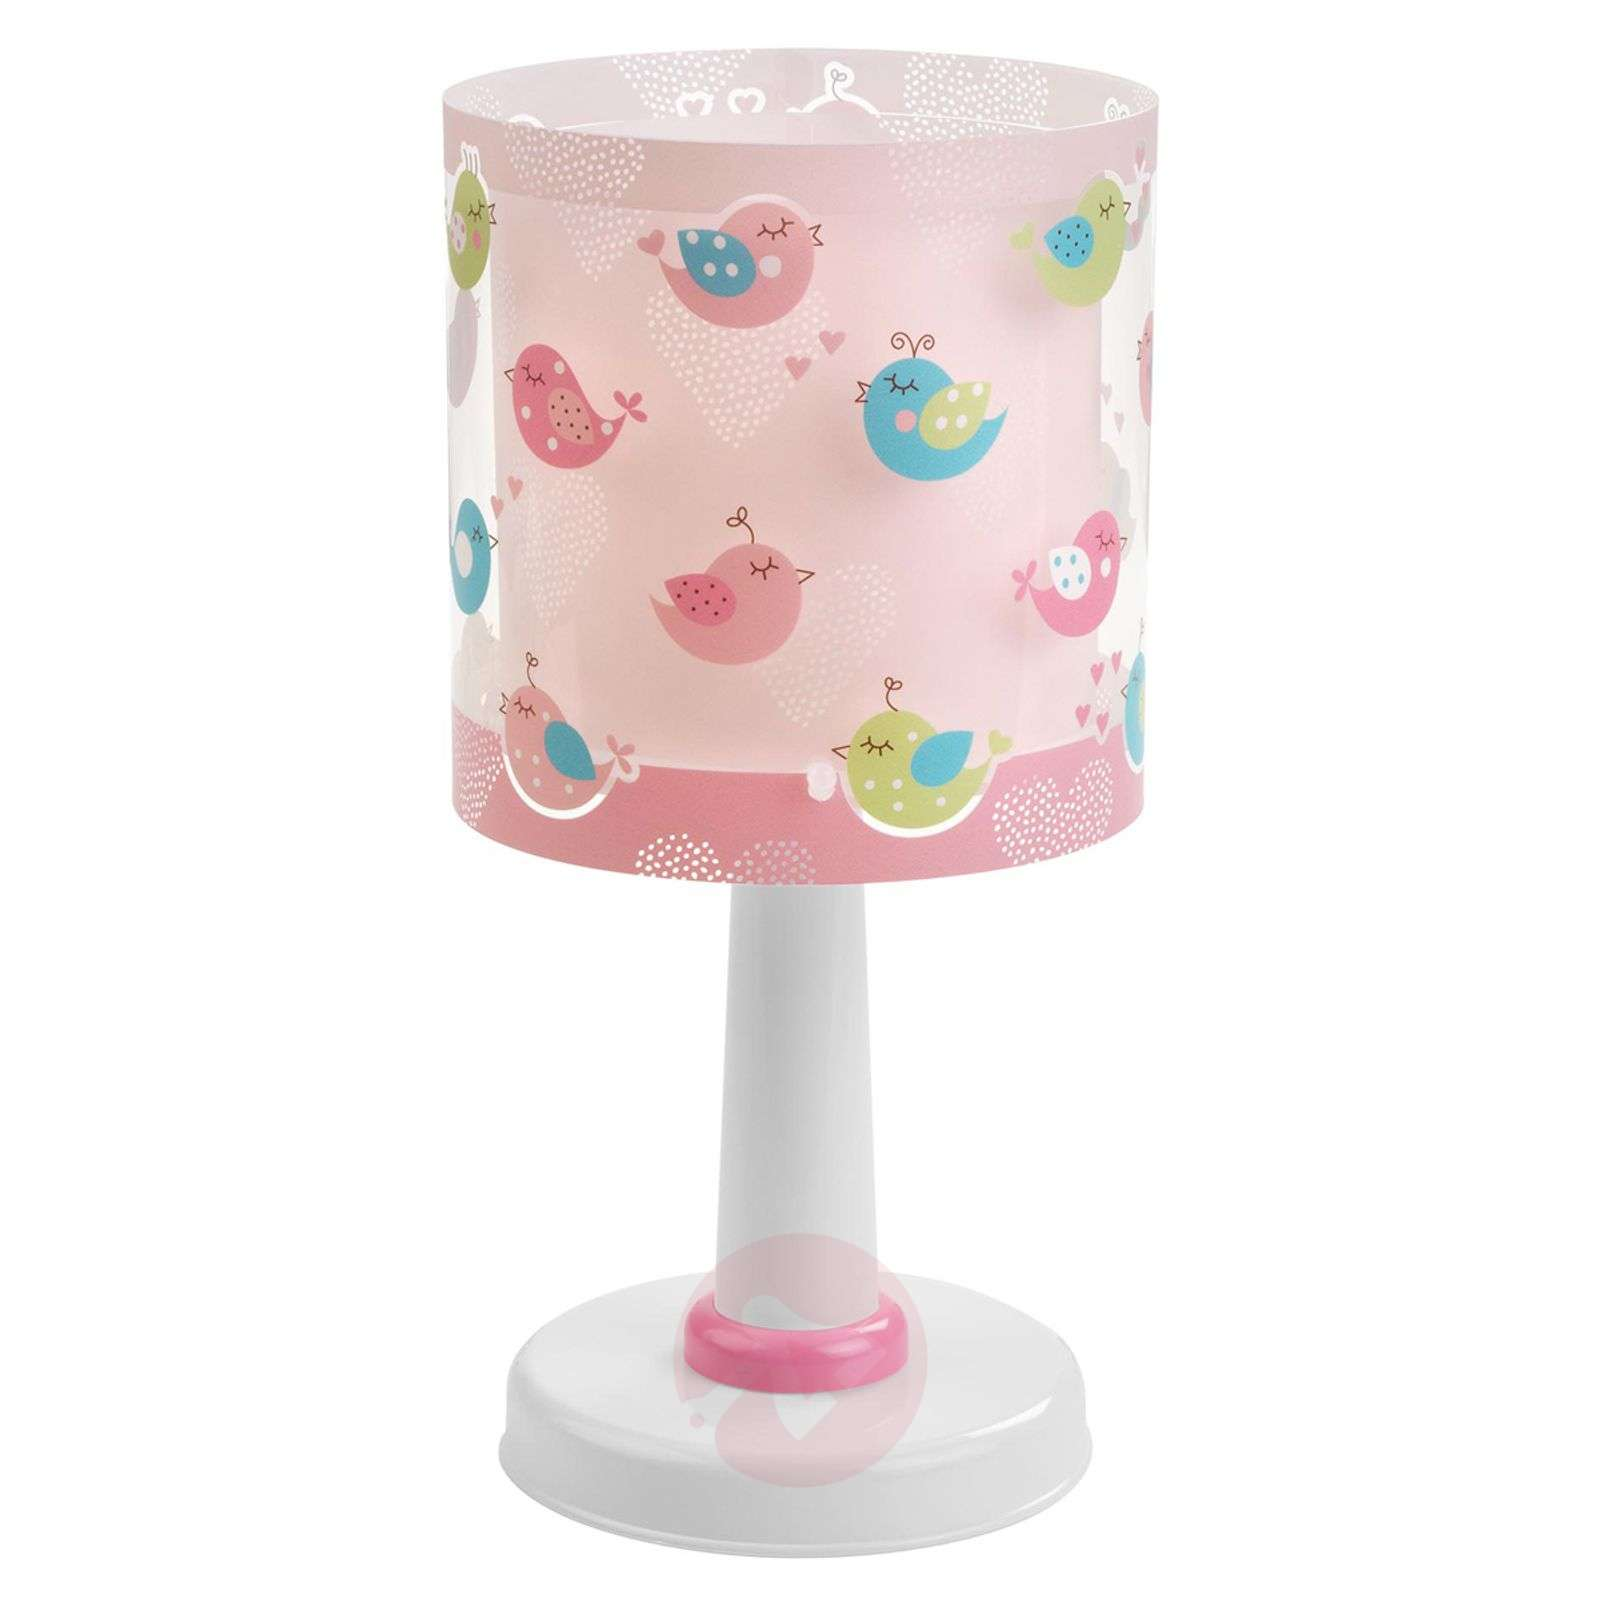 Cute childrens room table lamp birds lights cute childrens room table lamp birds 2507373 01 mozeypictures Images